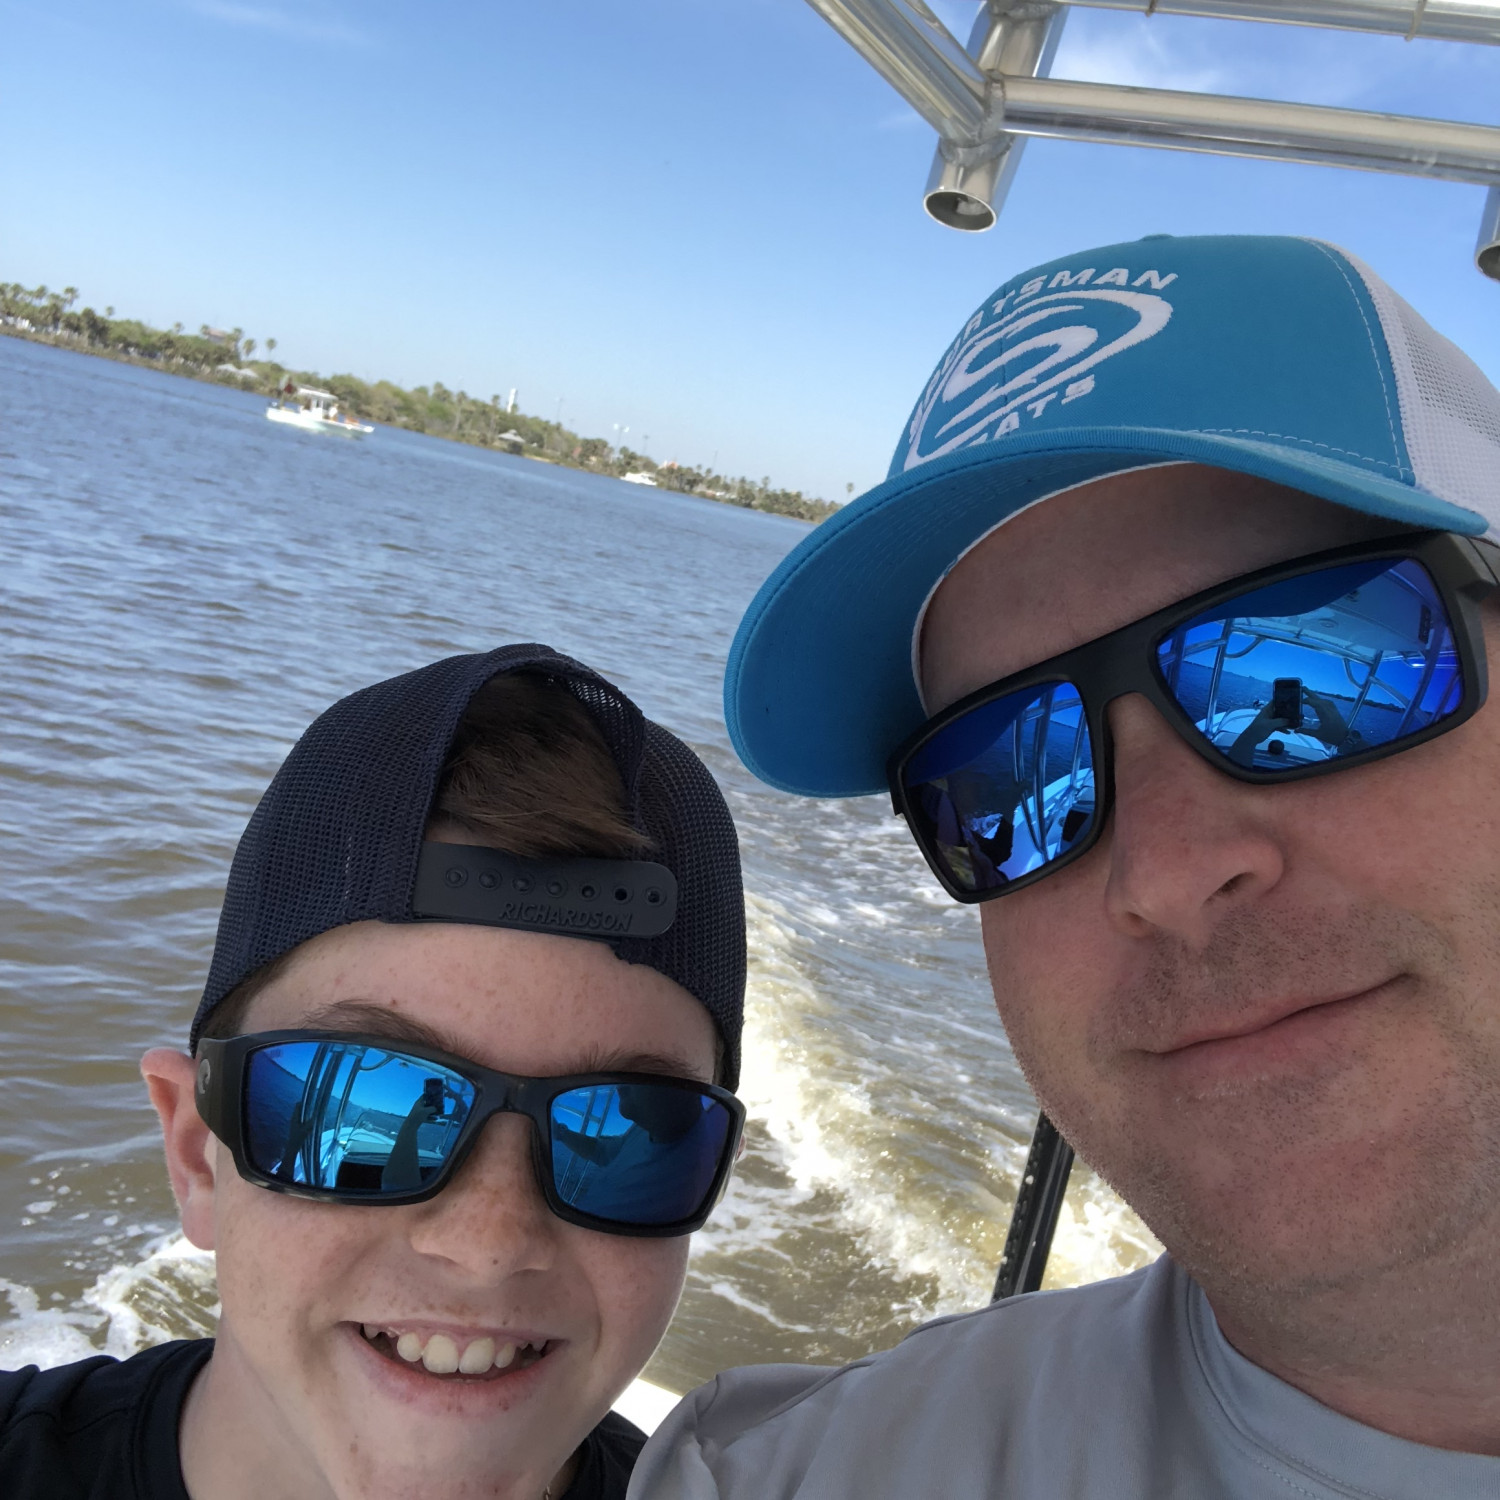 Title: Me and my oldest Enjoying our Sportsman - On board their Sportsman Masters 227 Bay Boat - Location: Ponce Inlet, Fl. Participating in the Photo Contest #SportsmanApril2018